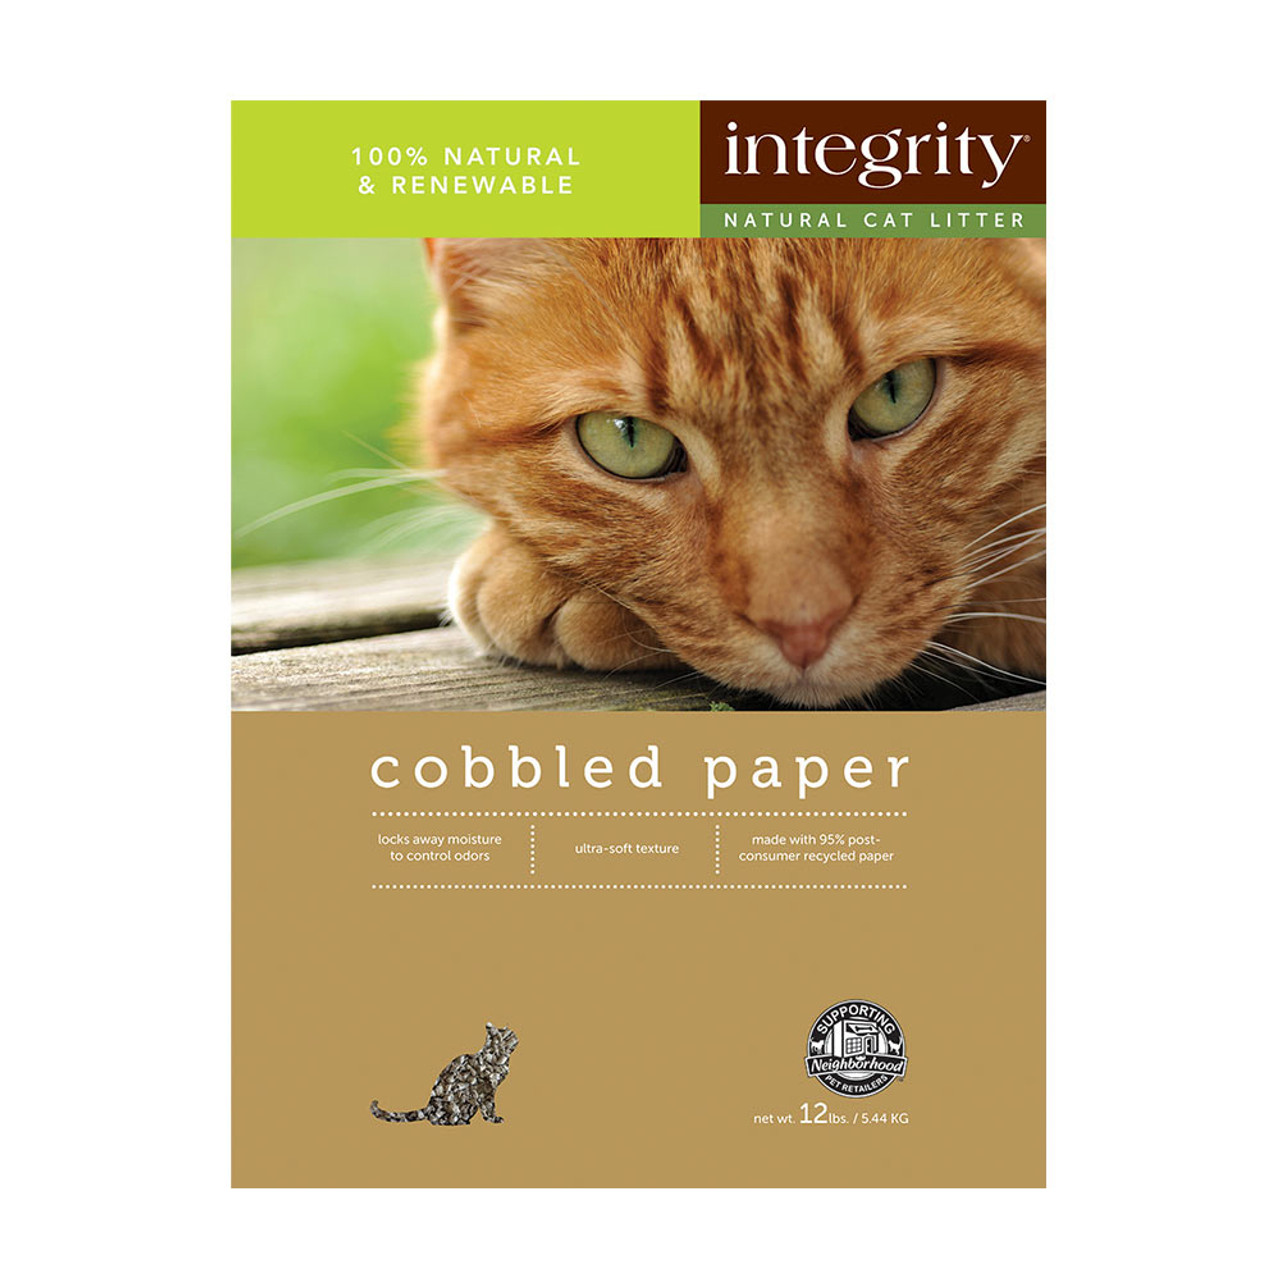 Integrity Cobbled Paper Cat Litter